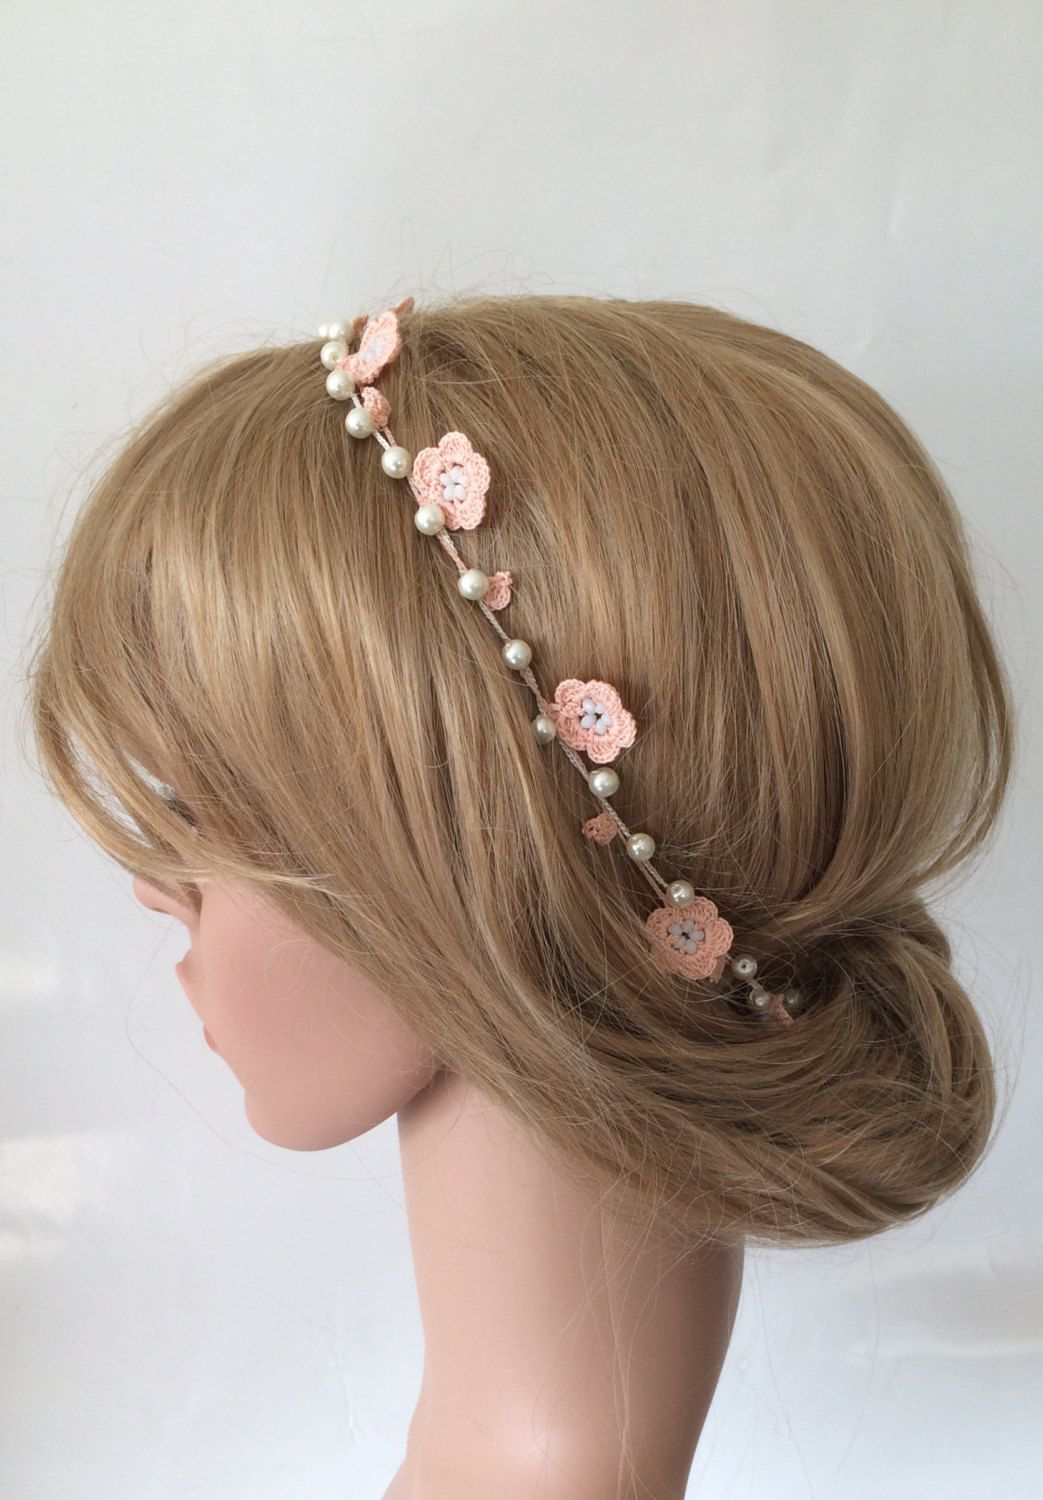 pin by nikki smithard on wedding hair | flower headband